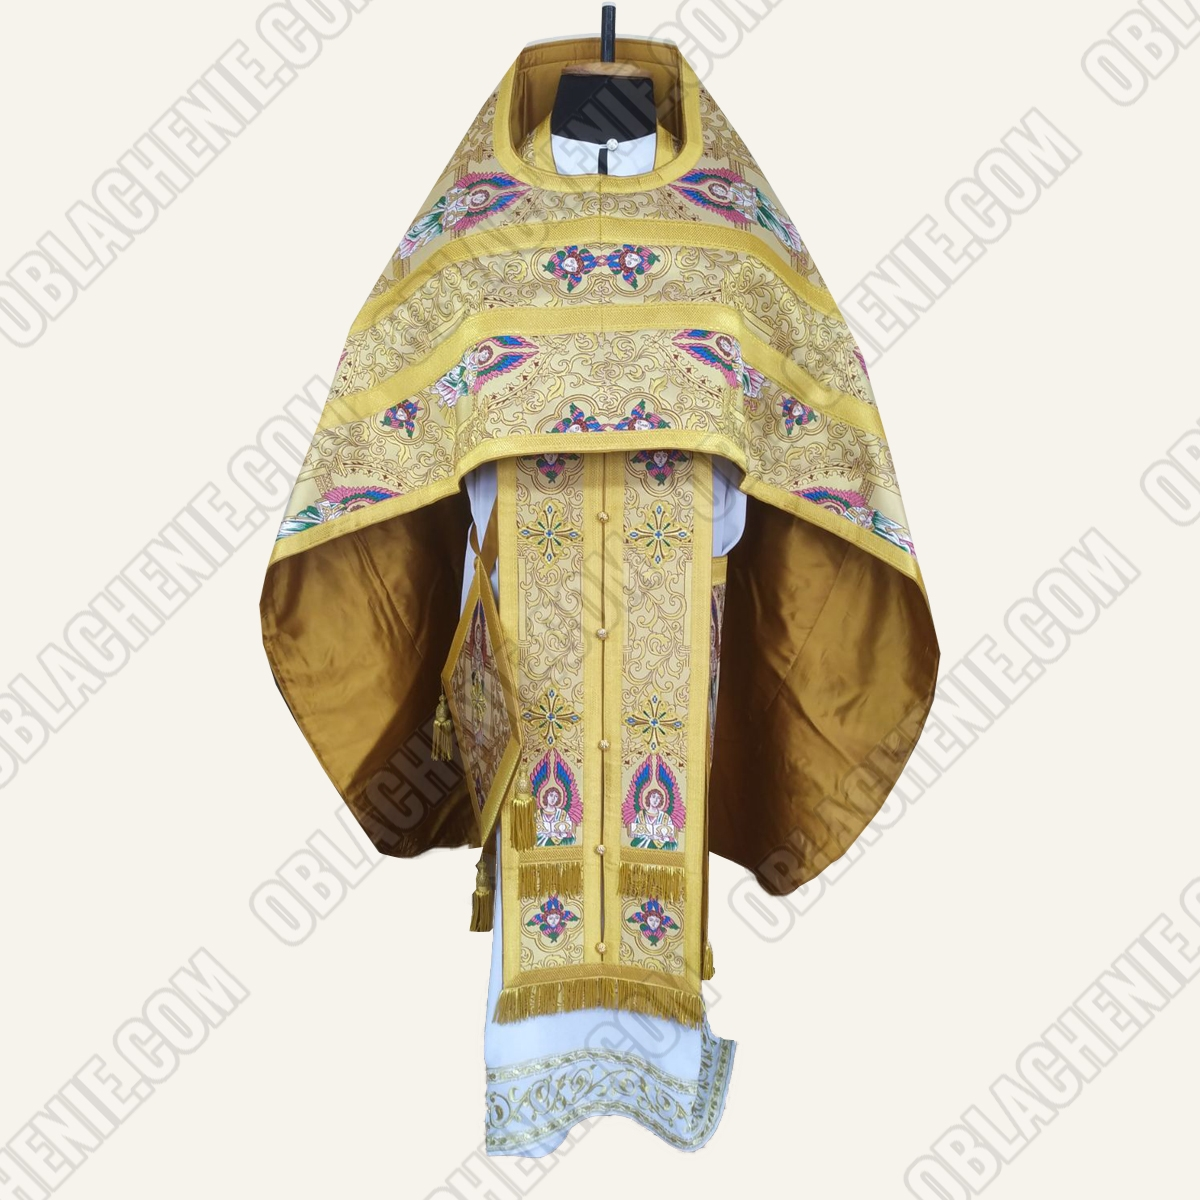 PRIEST'S VESTMENTS 11181